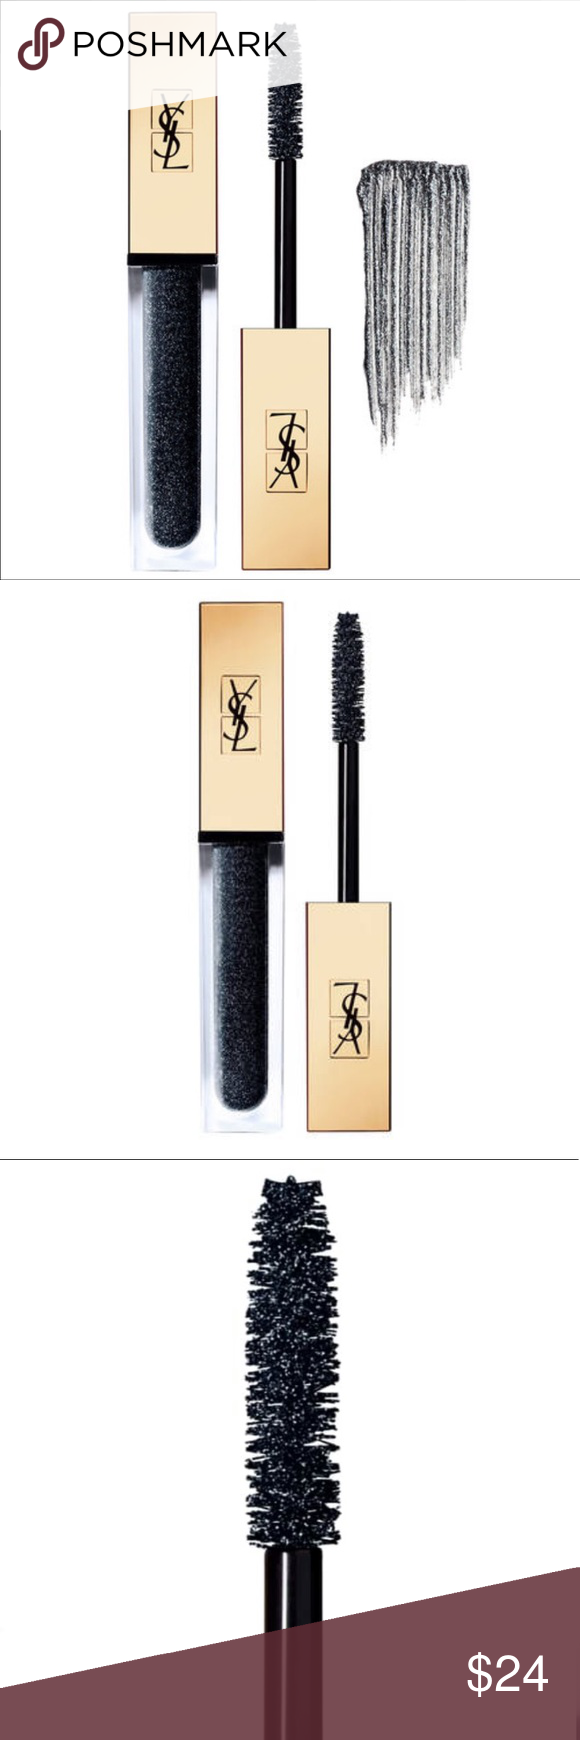 941be7b7e23 ✨NEW✨ YSL Mascara Vinyl Couture in I'm The Storm Color: 7 I'm the ...